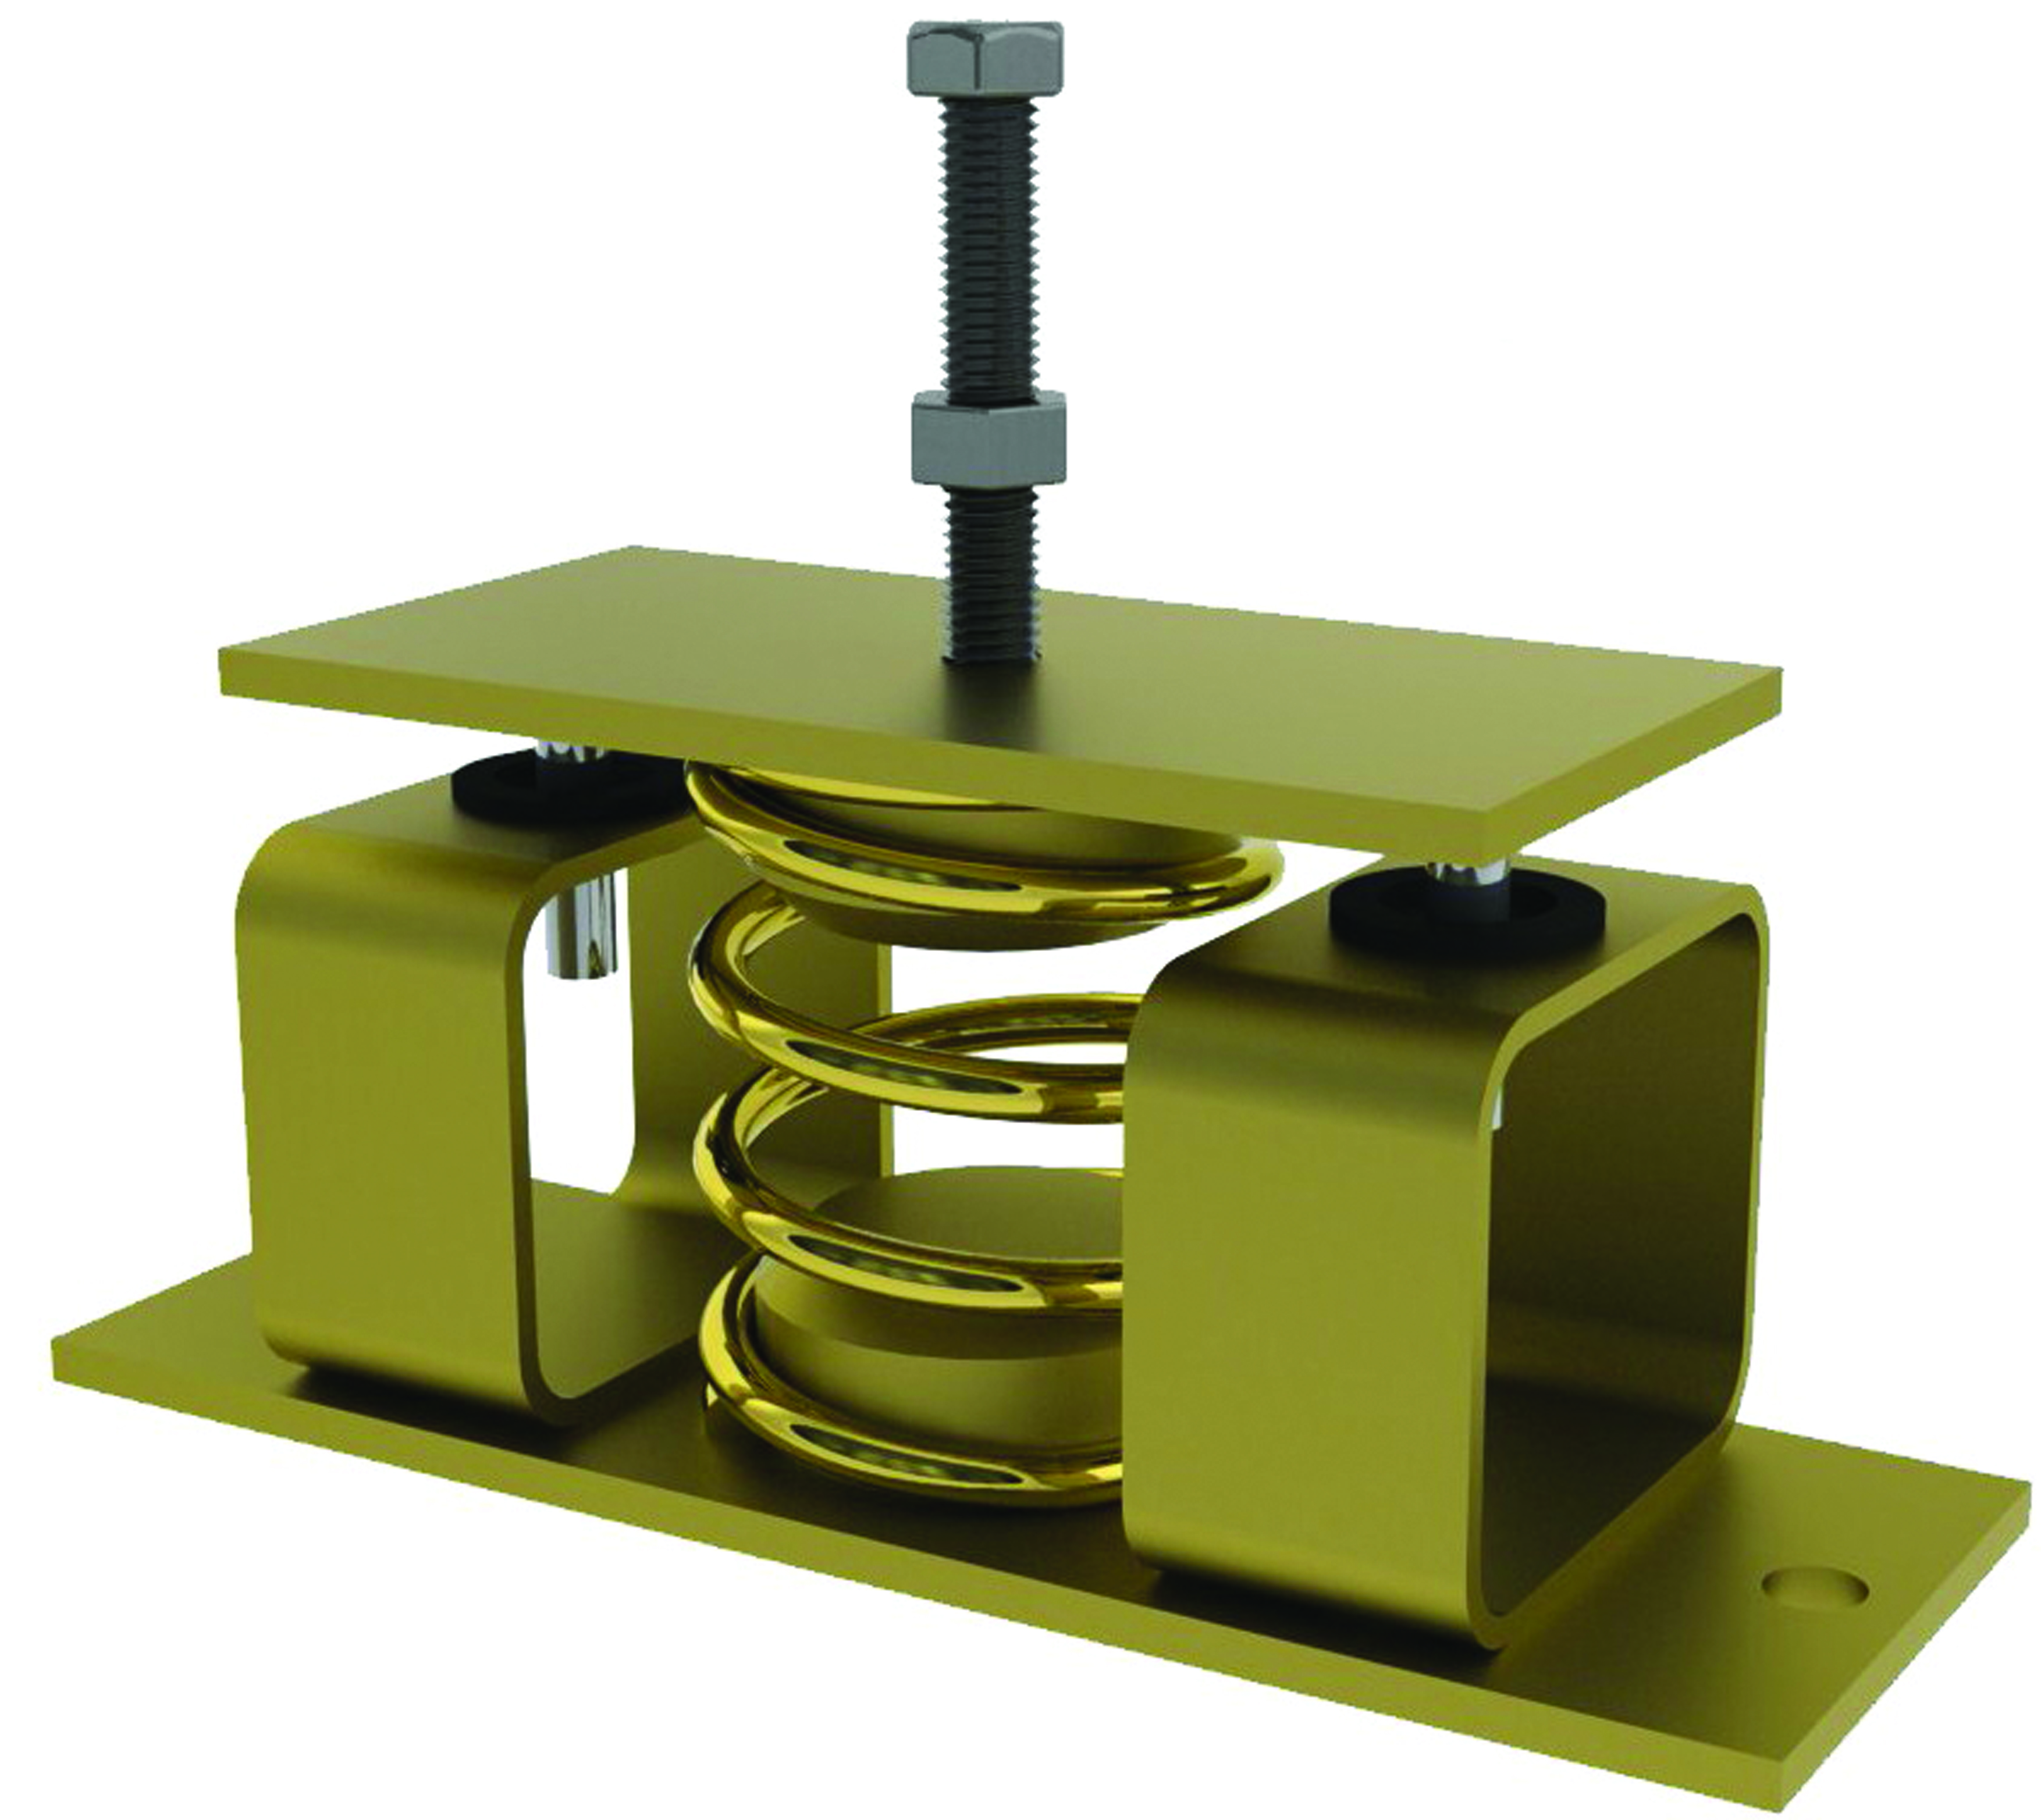 Restrained Spring Mount